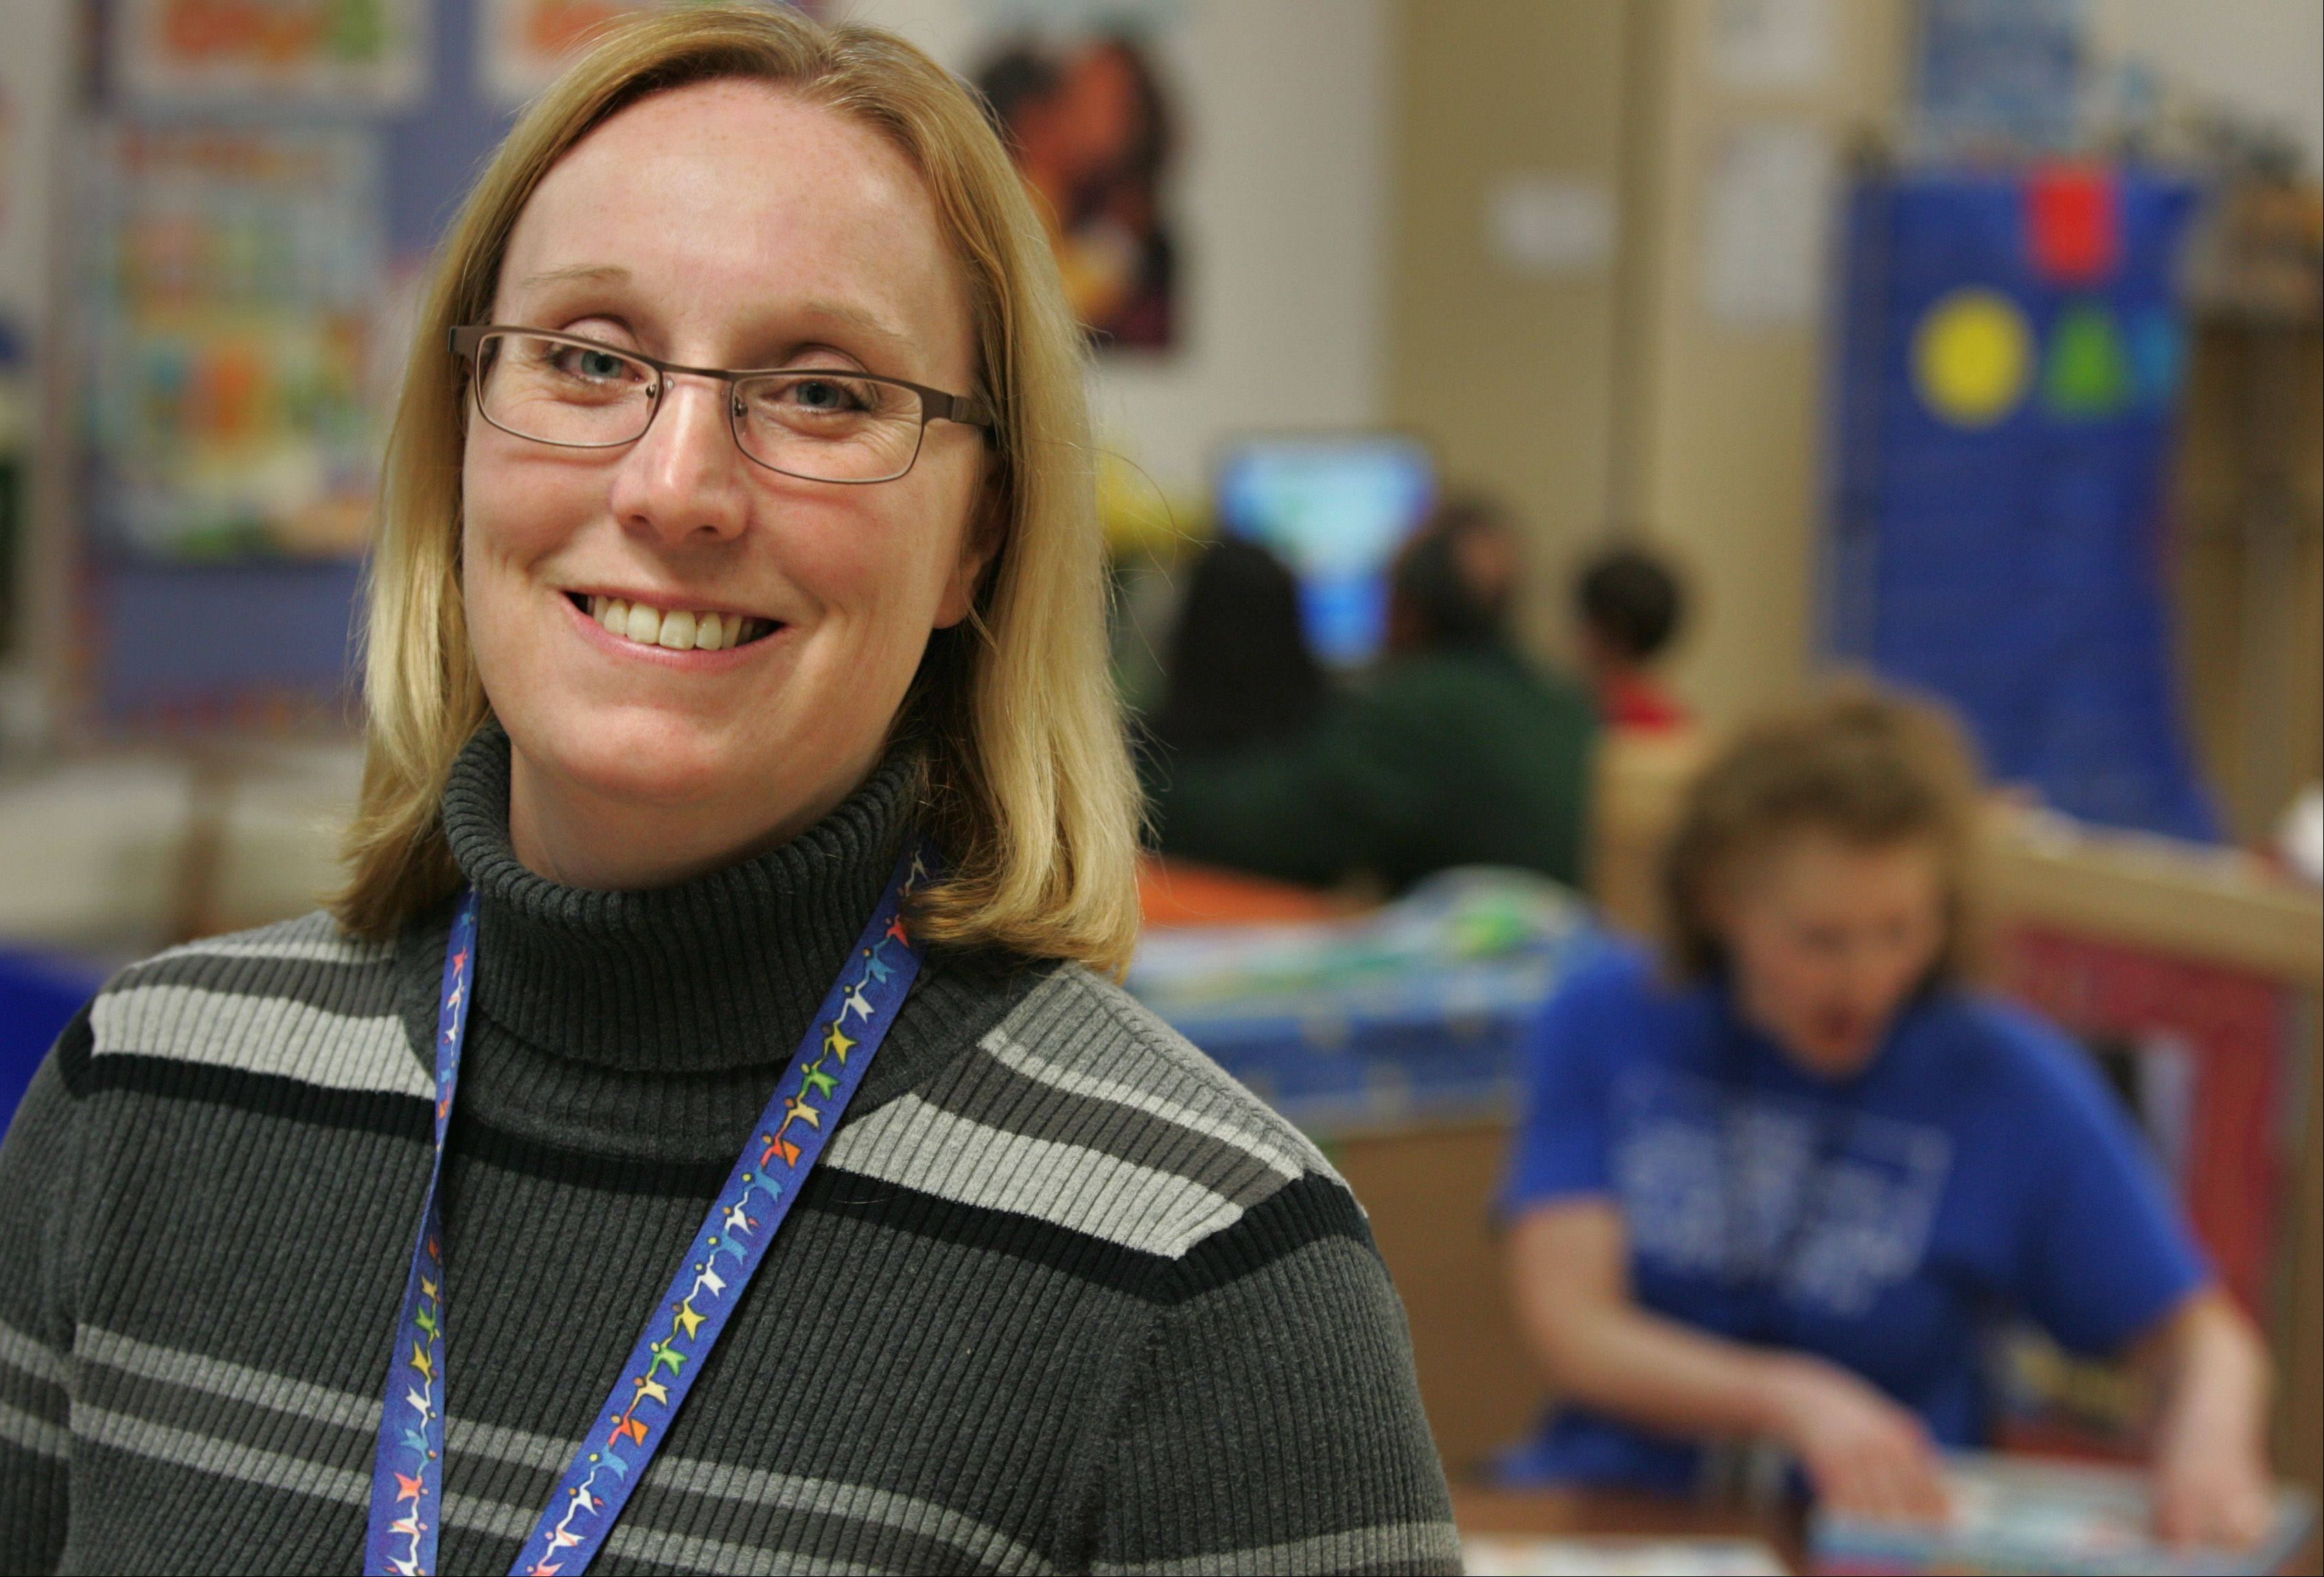 Jacquie Duginske, an administrator in Carpentersville-based Community Unit District 300, is among the growing number of teachers to gain national certification.